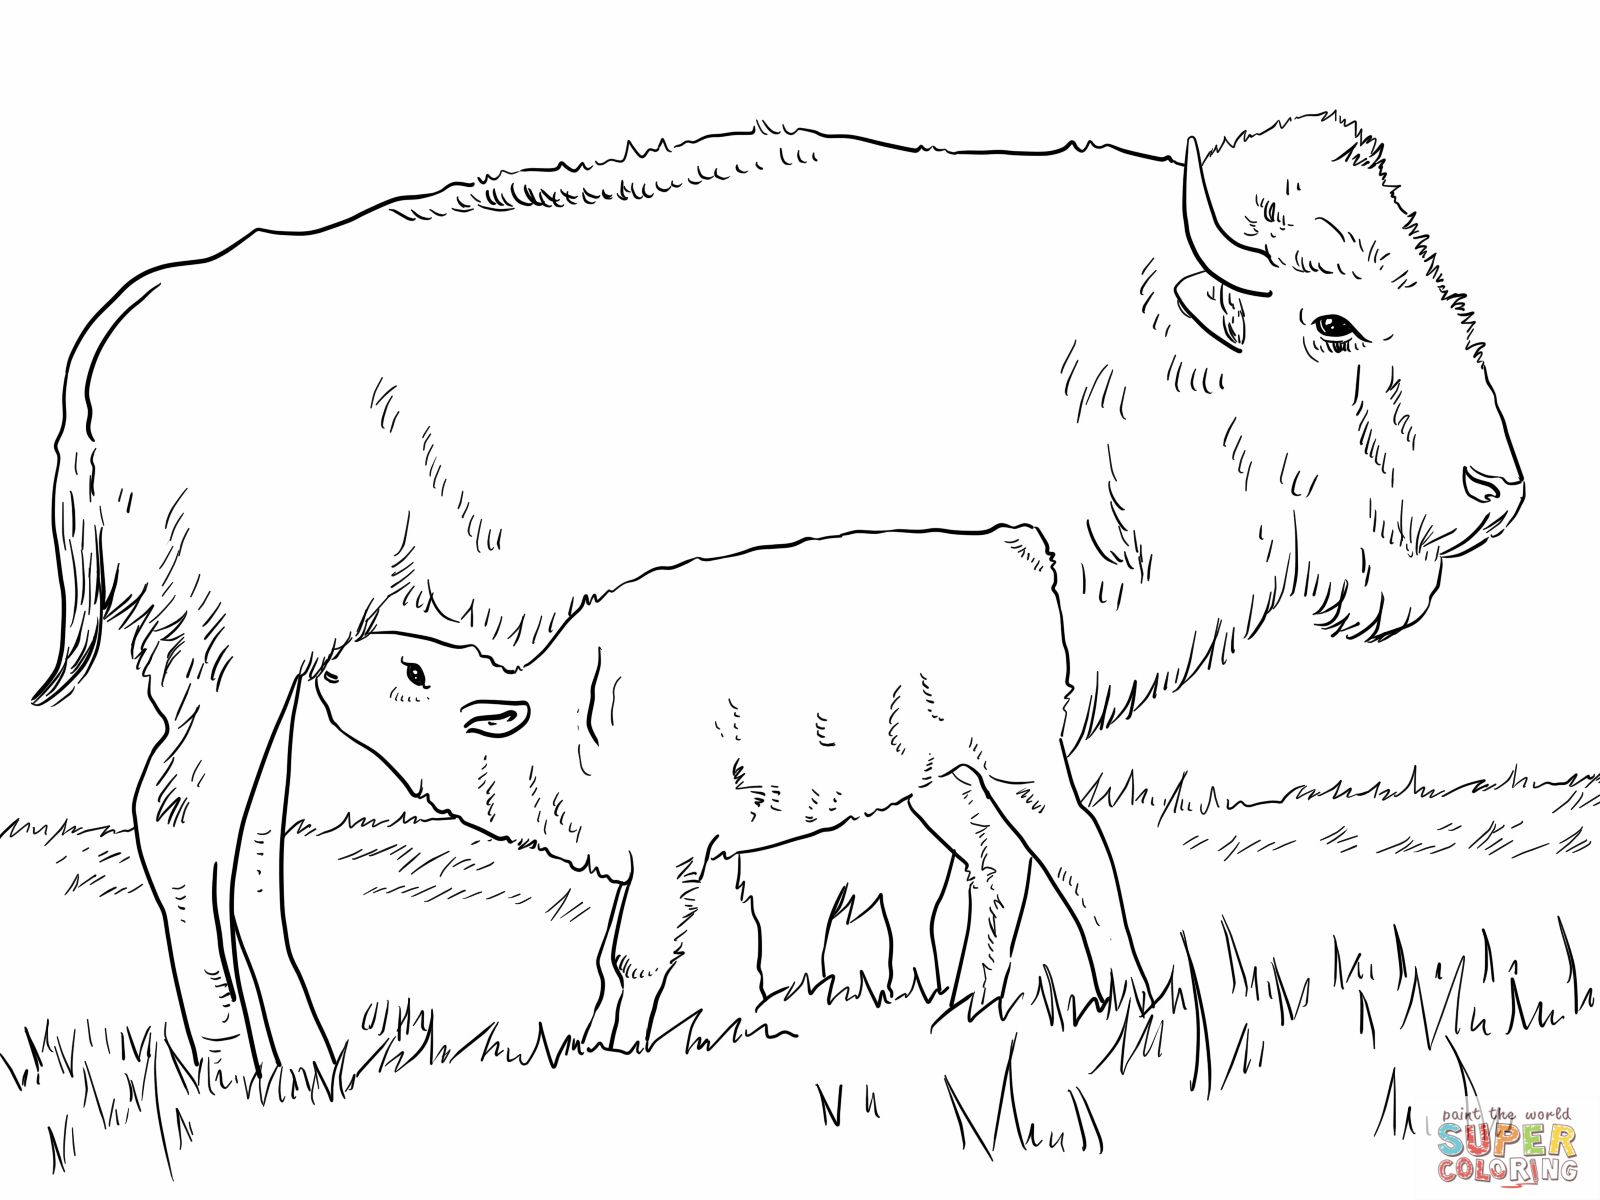 Bison Coloring Page Within Alphabet Letters Coloring Pages Zombiku Xyz Baby Coloring Pages Animal Coloring Pages Coloring Pages